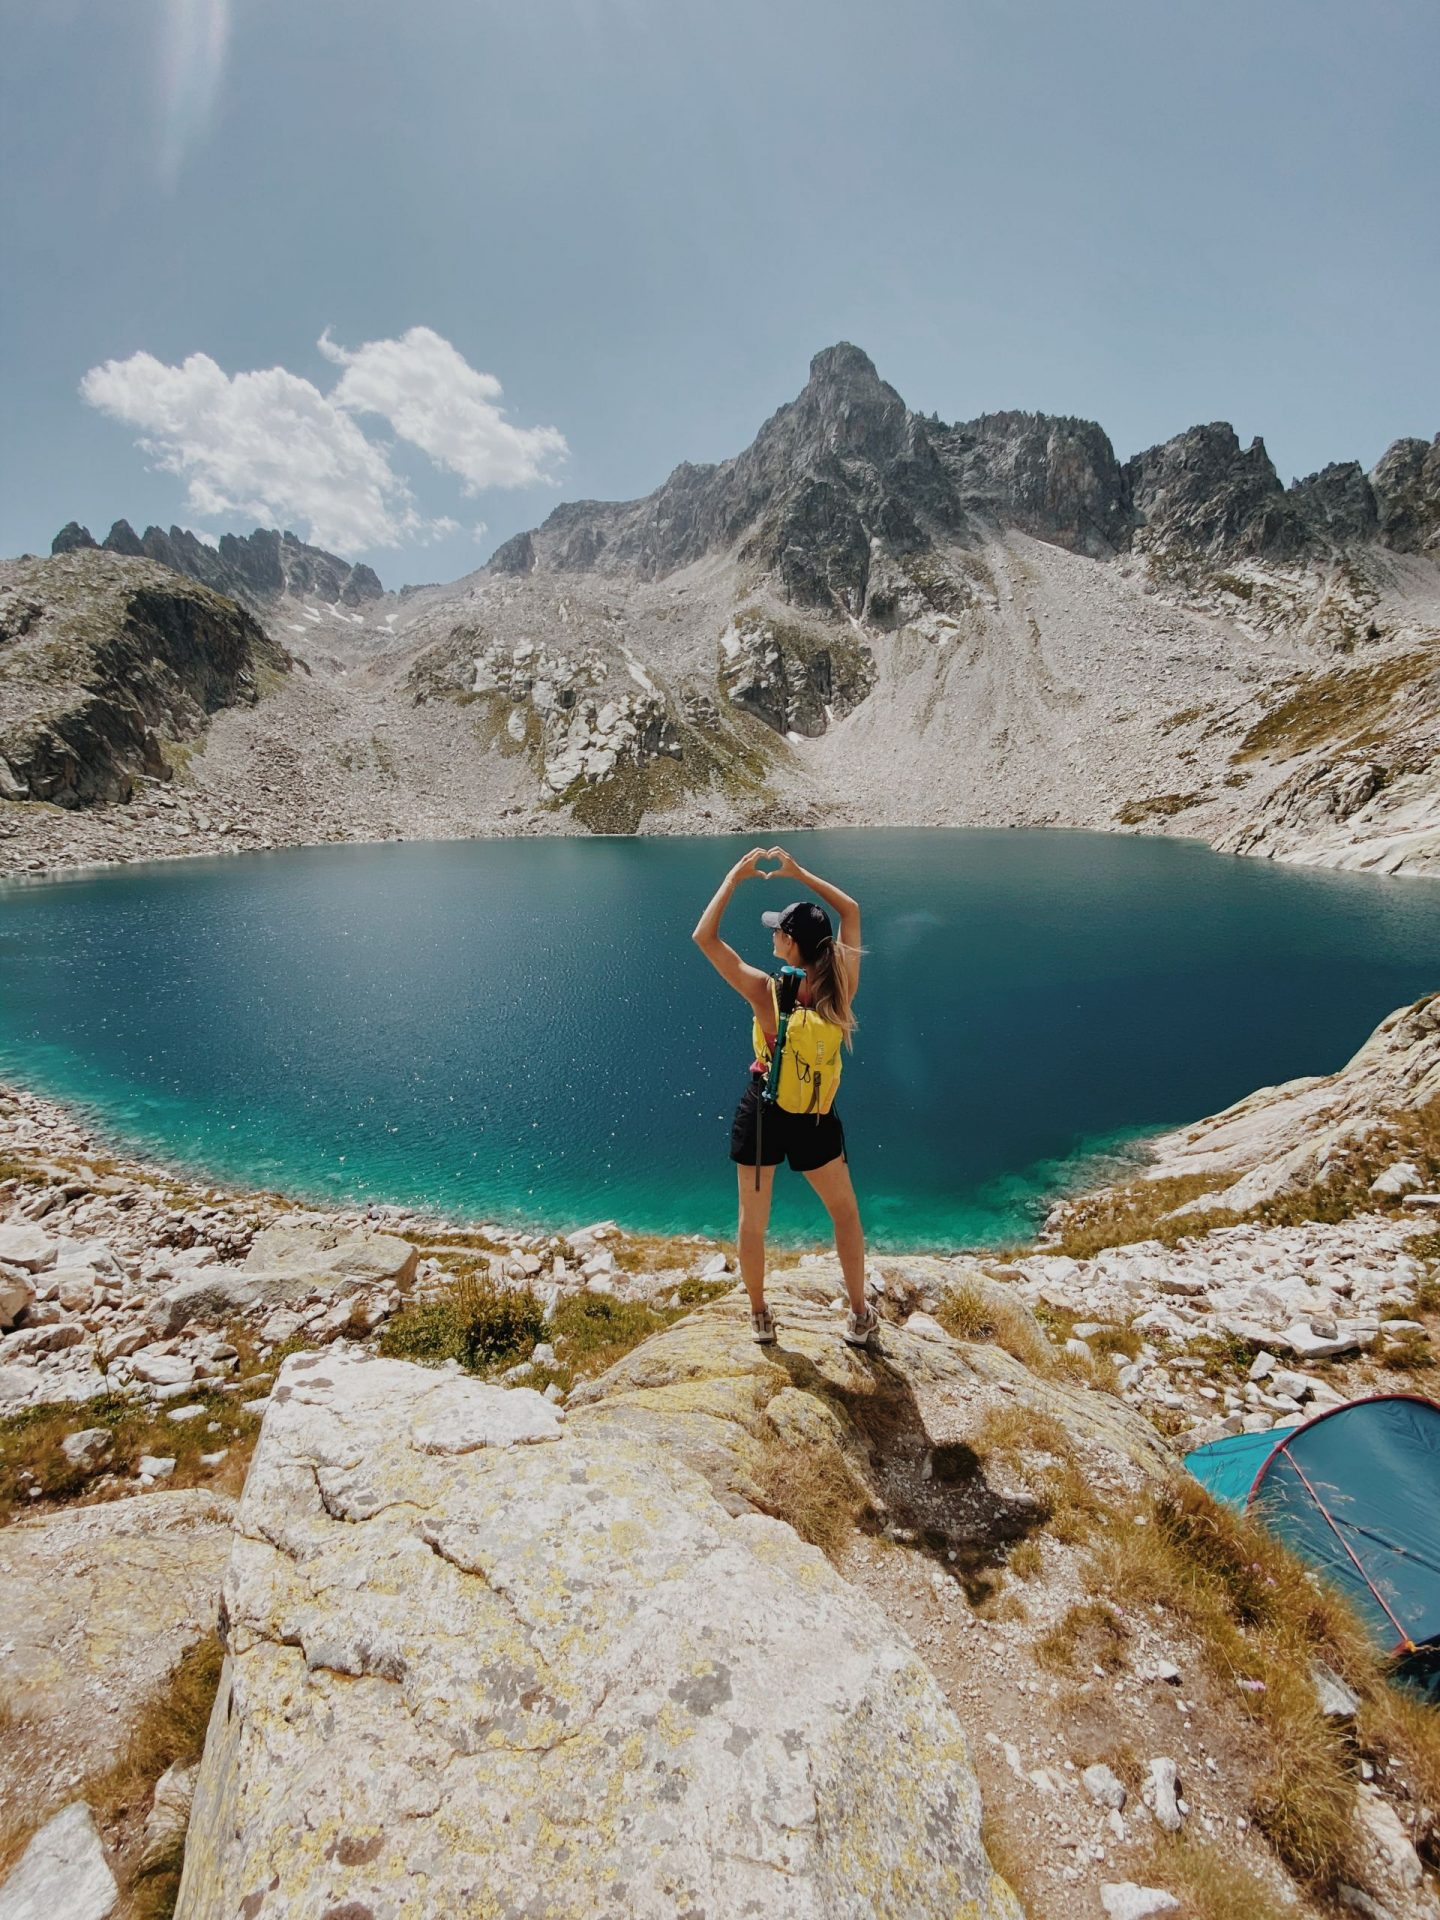 Ring Hike to Portette, Claus & Valscura Lakes – Gesso Valley